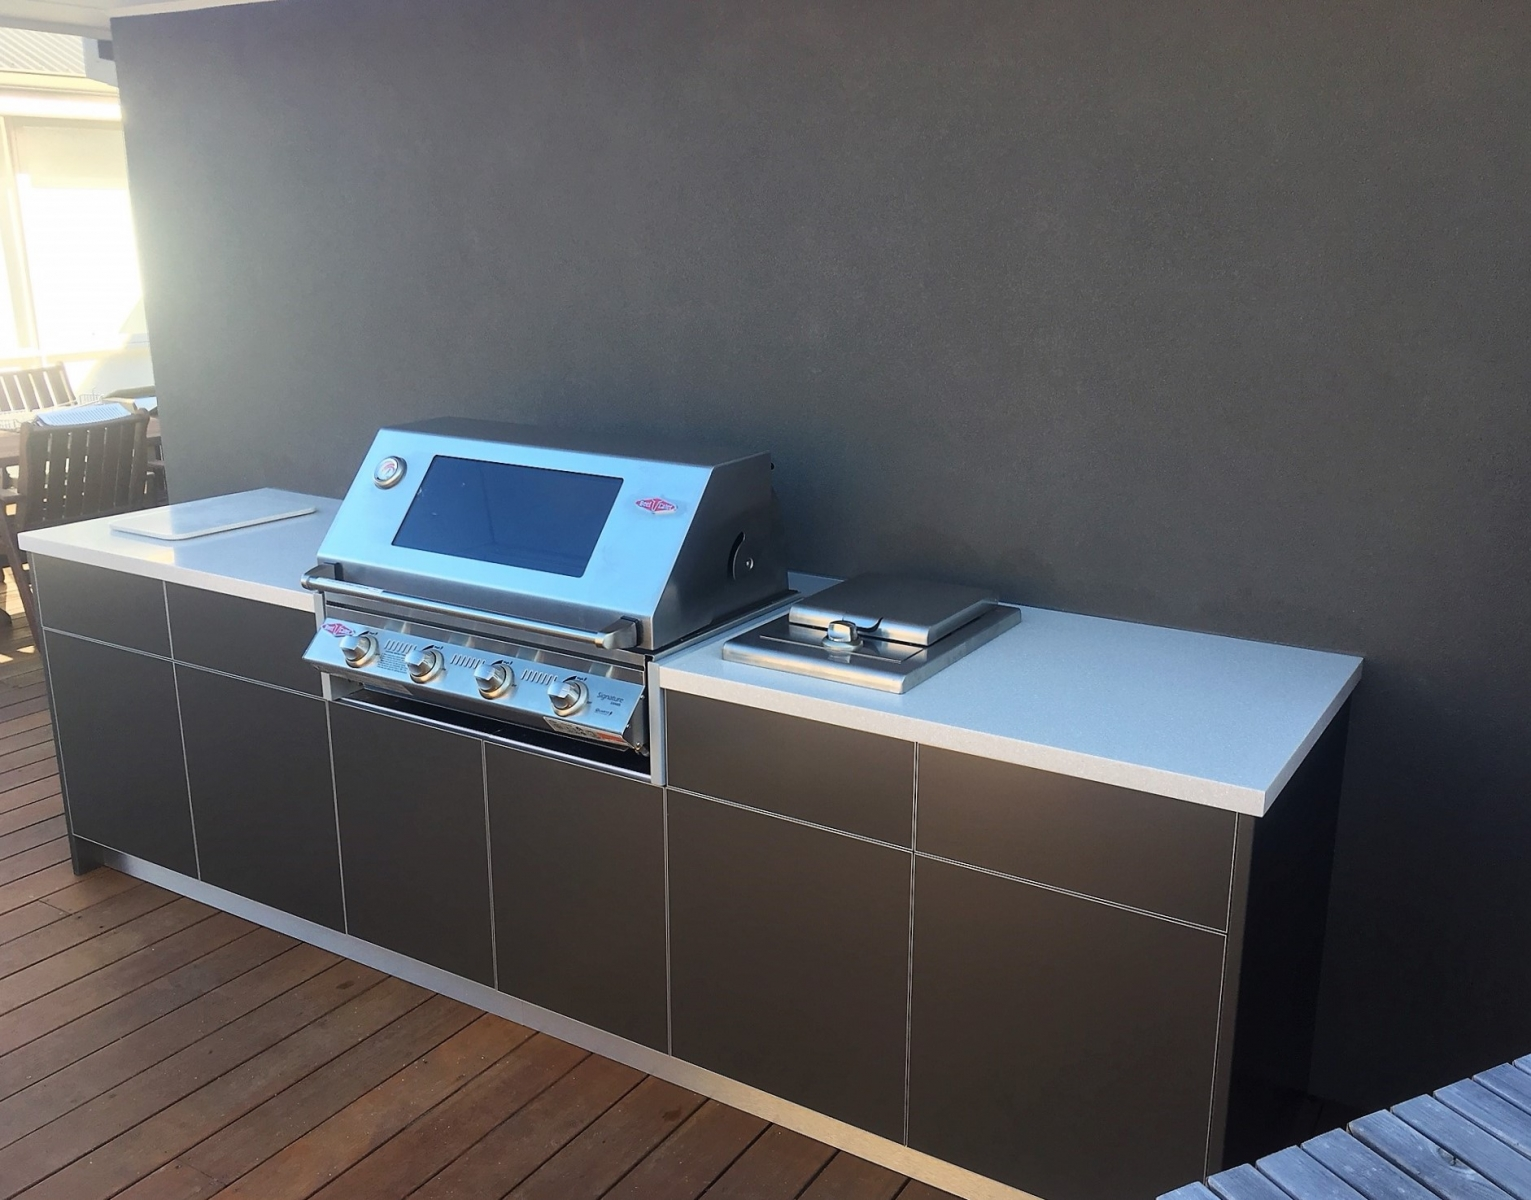 Beefeater-Signature-3000S-4-Burner-Metallic-Charcoal-Corian-Savannah-Outdoor-Kitchen